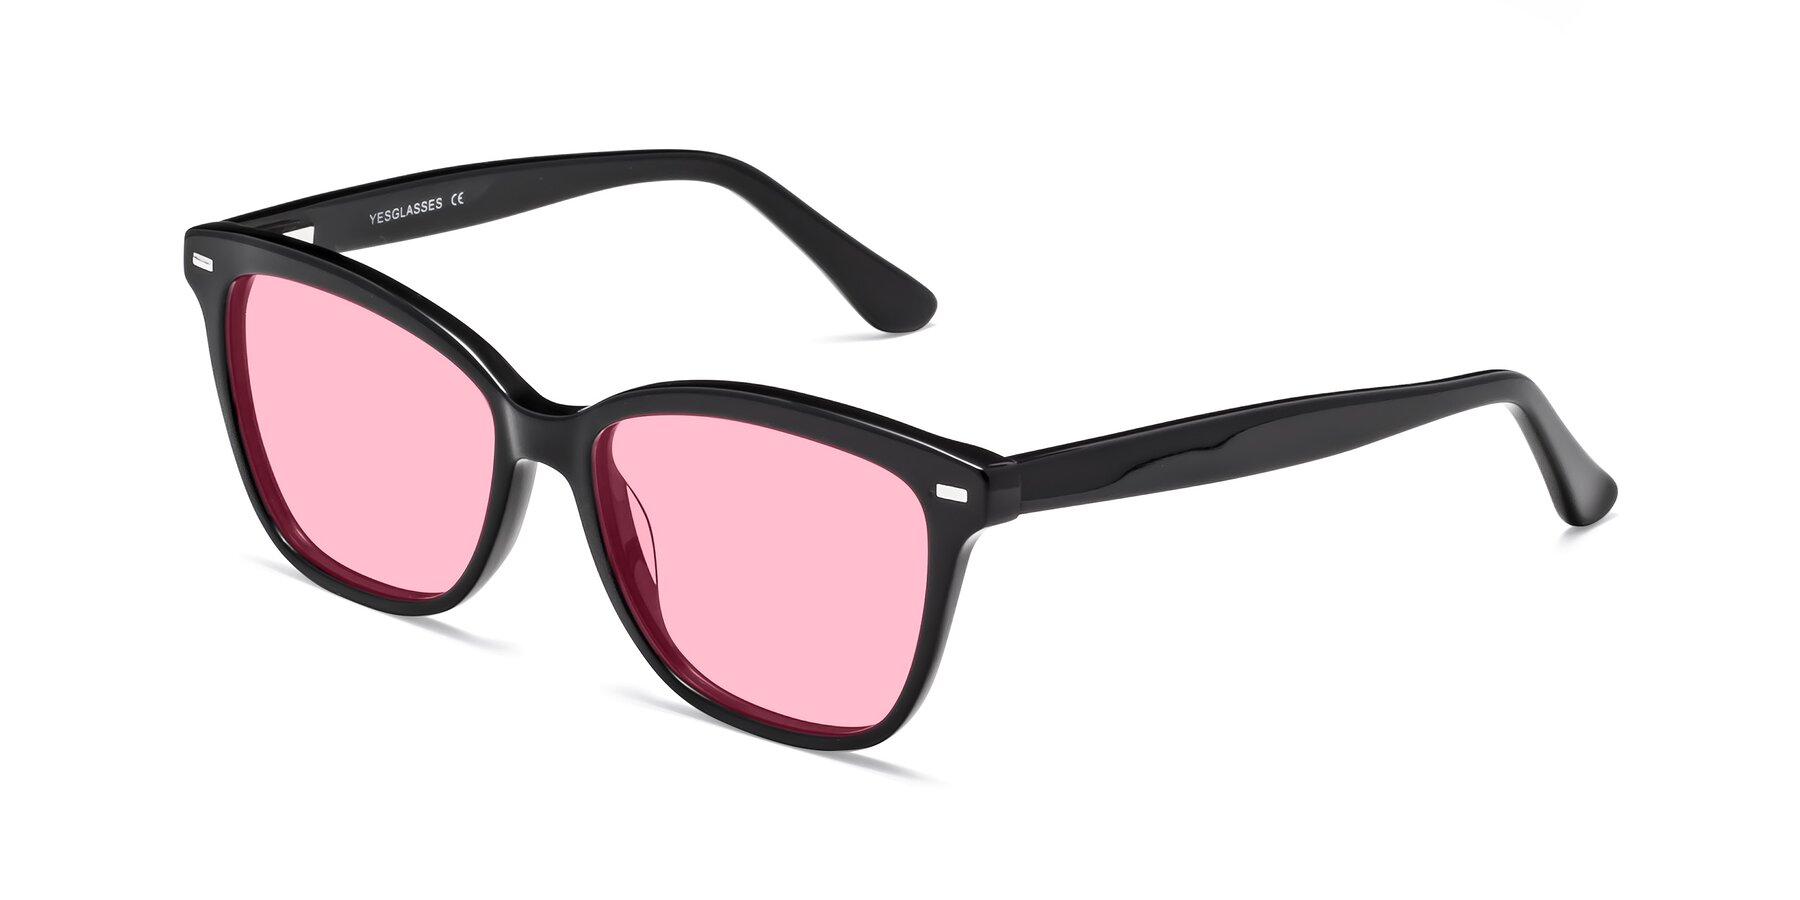 Angle of 17485 in Black with Medium Pink Tinted Lenses